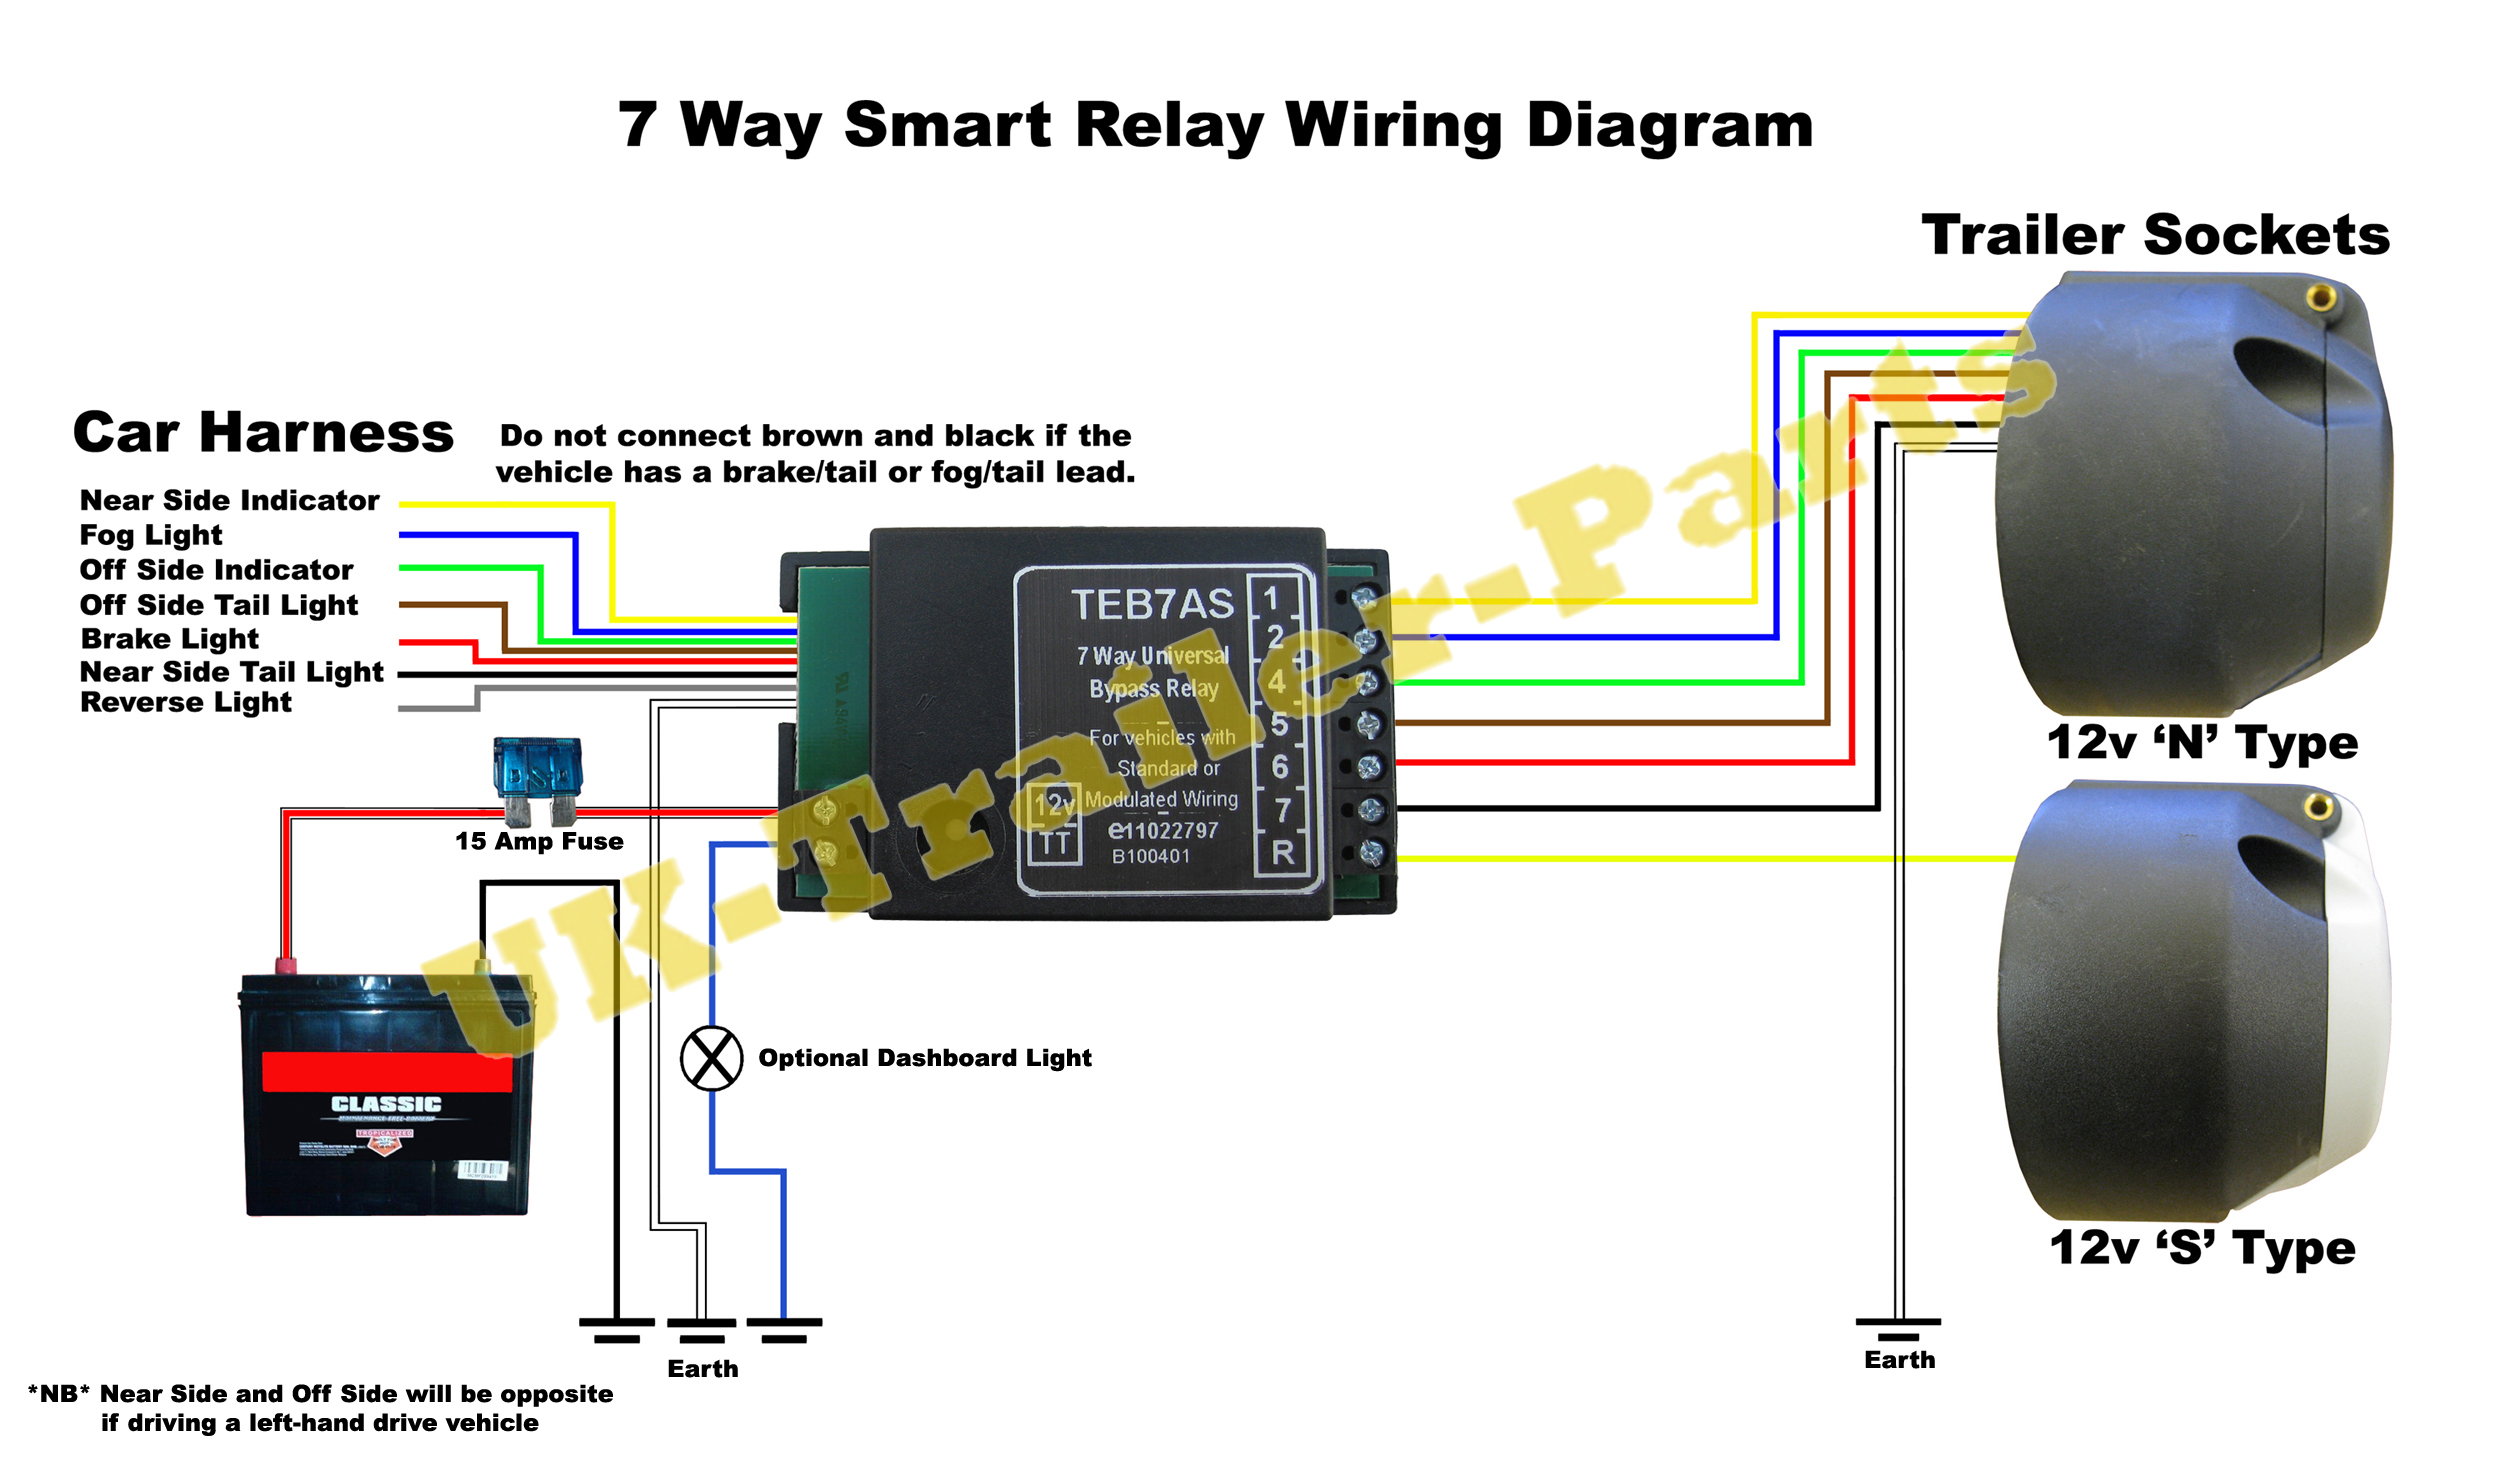 relay wiring diagram IkuKRrj jaguar x type towbar wiring diagram jaguar x type wiring diagram  at mifinder.co